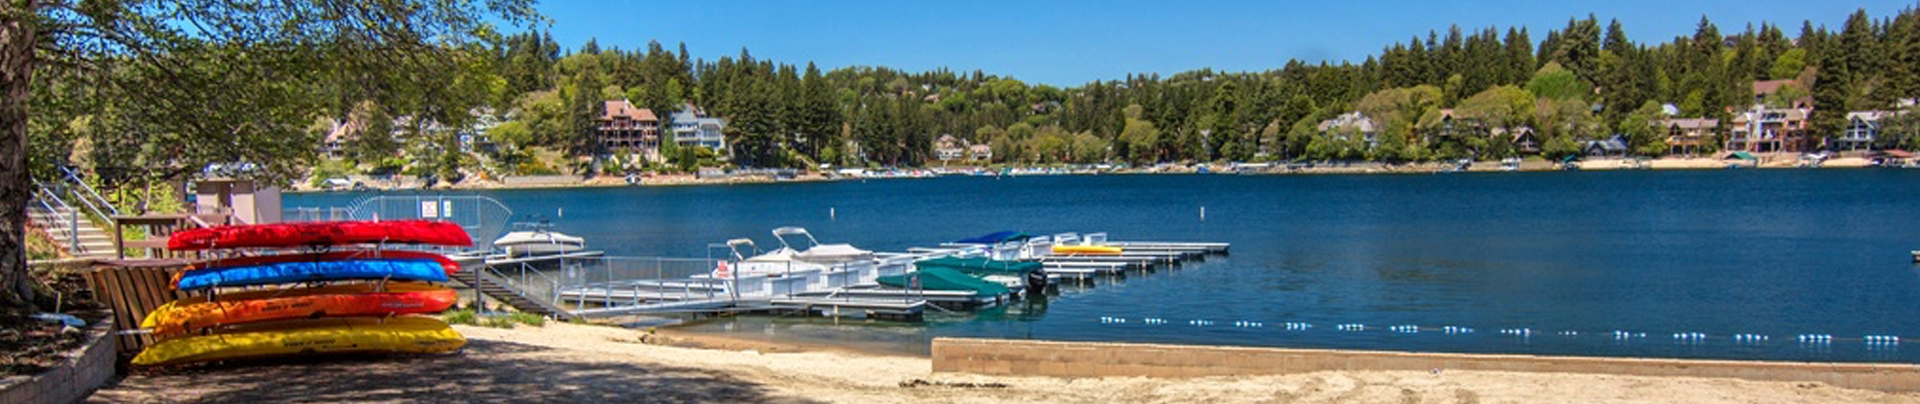 Real Estate in Lake Arrowhead, California